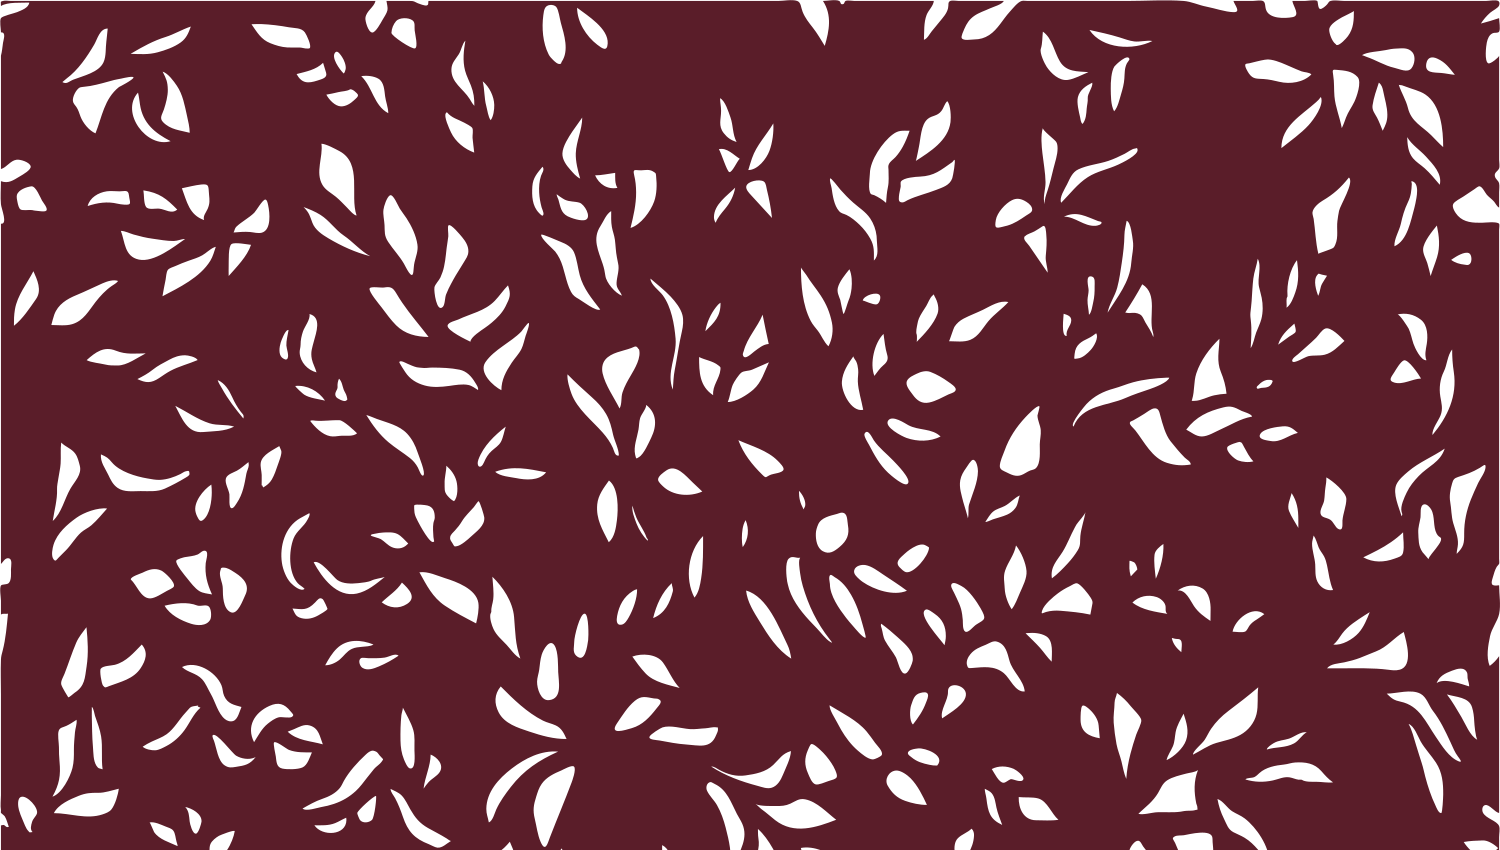 Parasoleil™ bb Leaves© pattern displayed with a burgundy color overlay